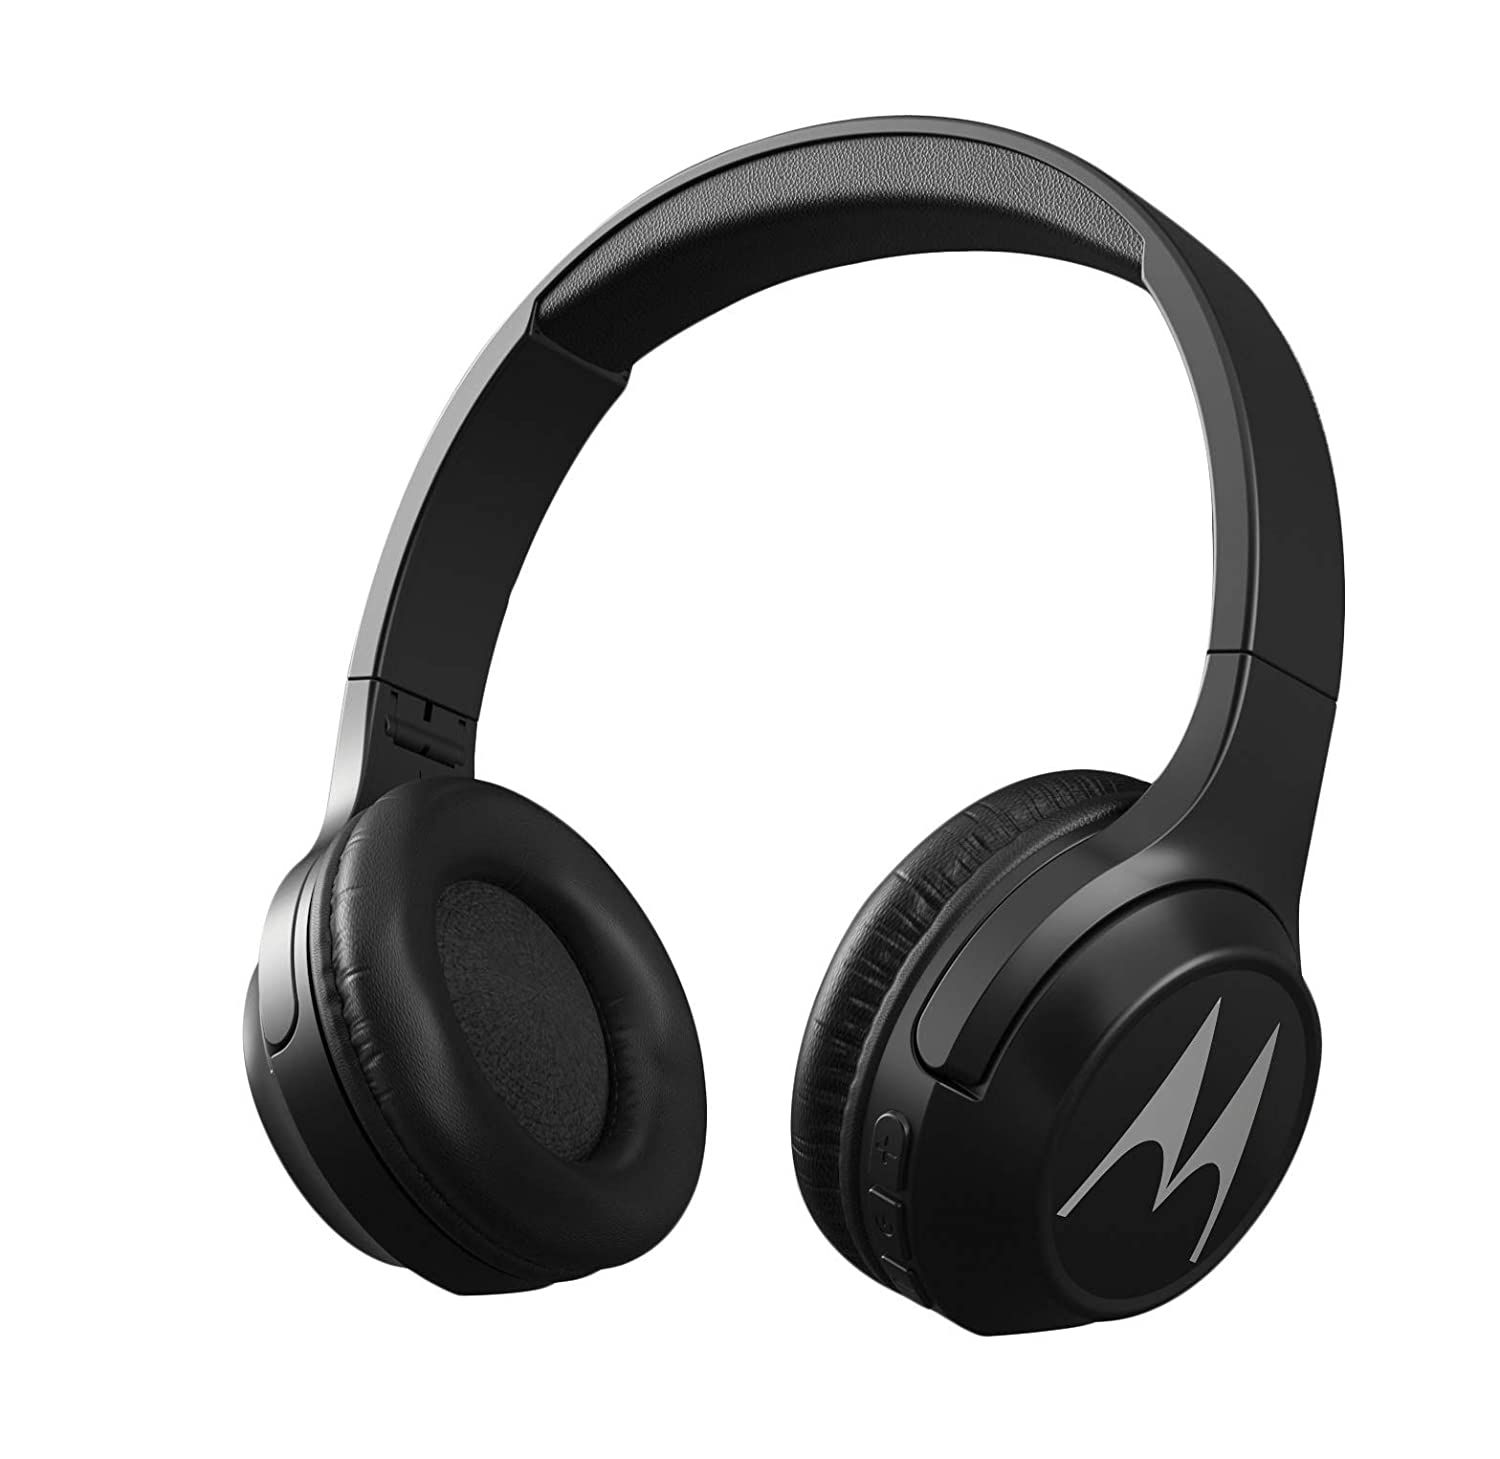 Motorola Escape 210 Over-Ear Bluetooth Headphones with Alexa